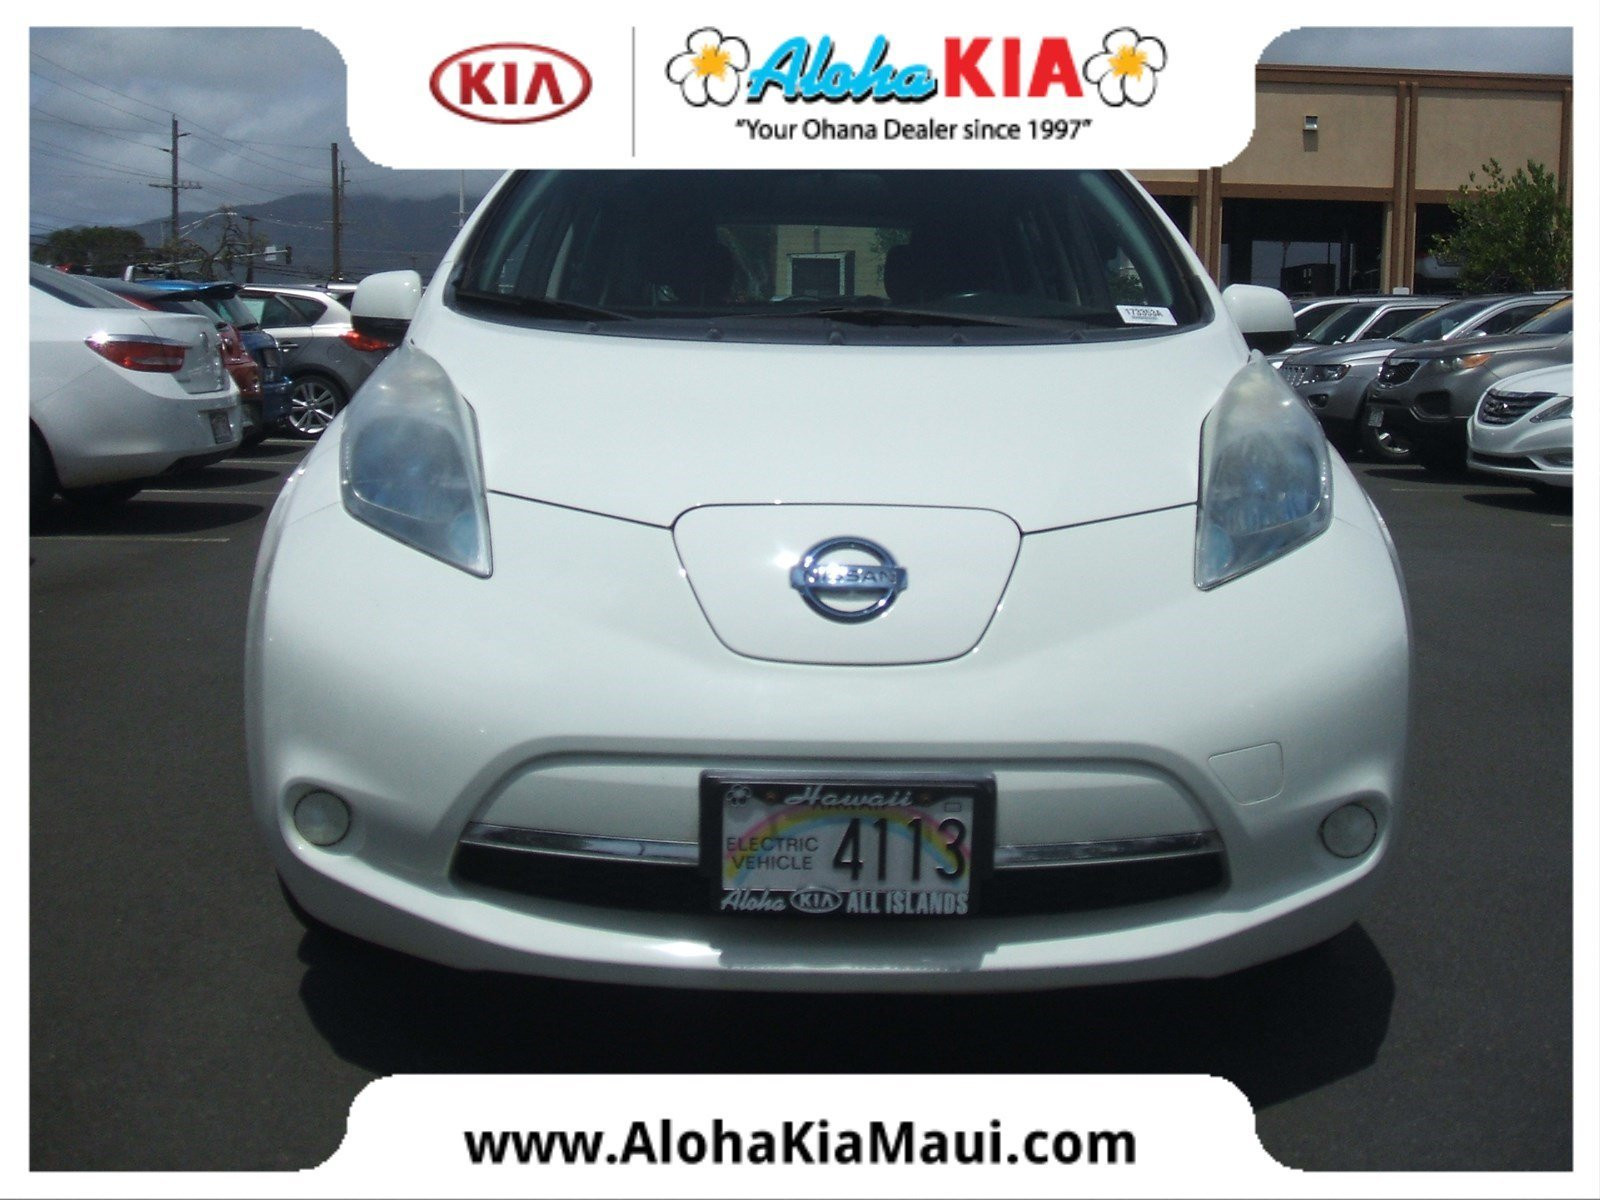 maui used cars for sale new used vehicles between $1 001 and $10 000 for sale